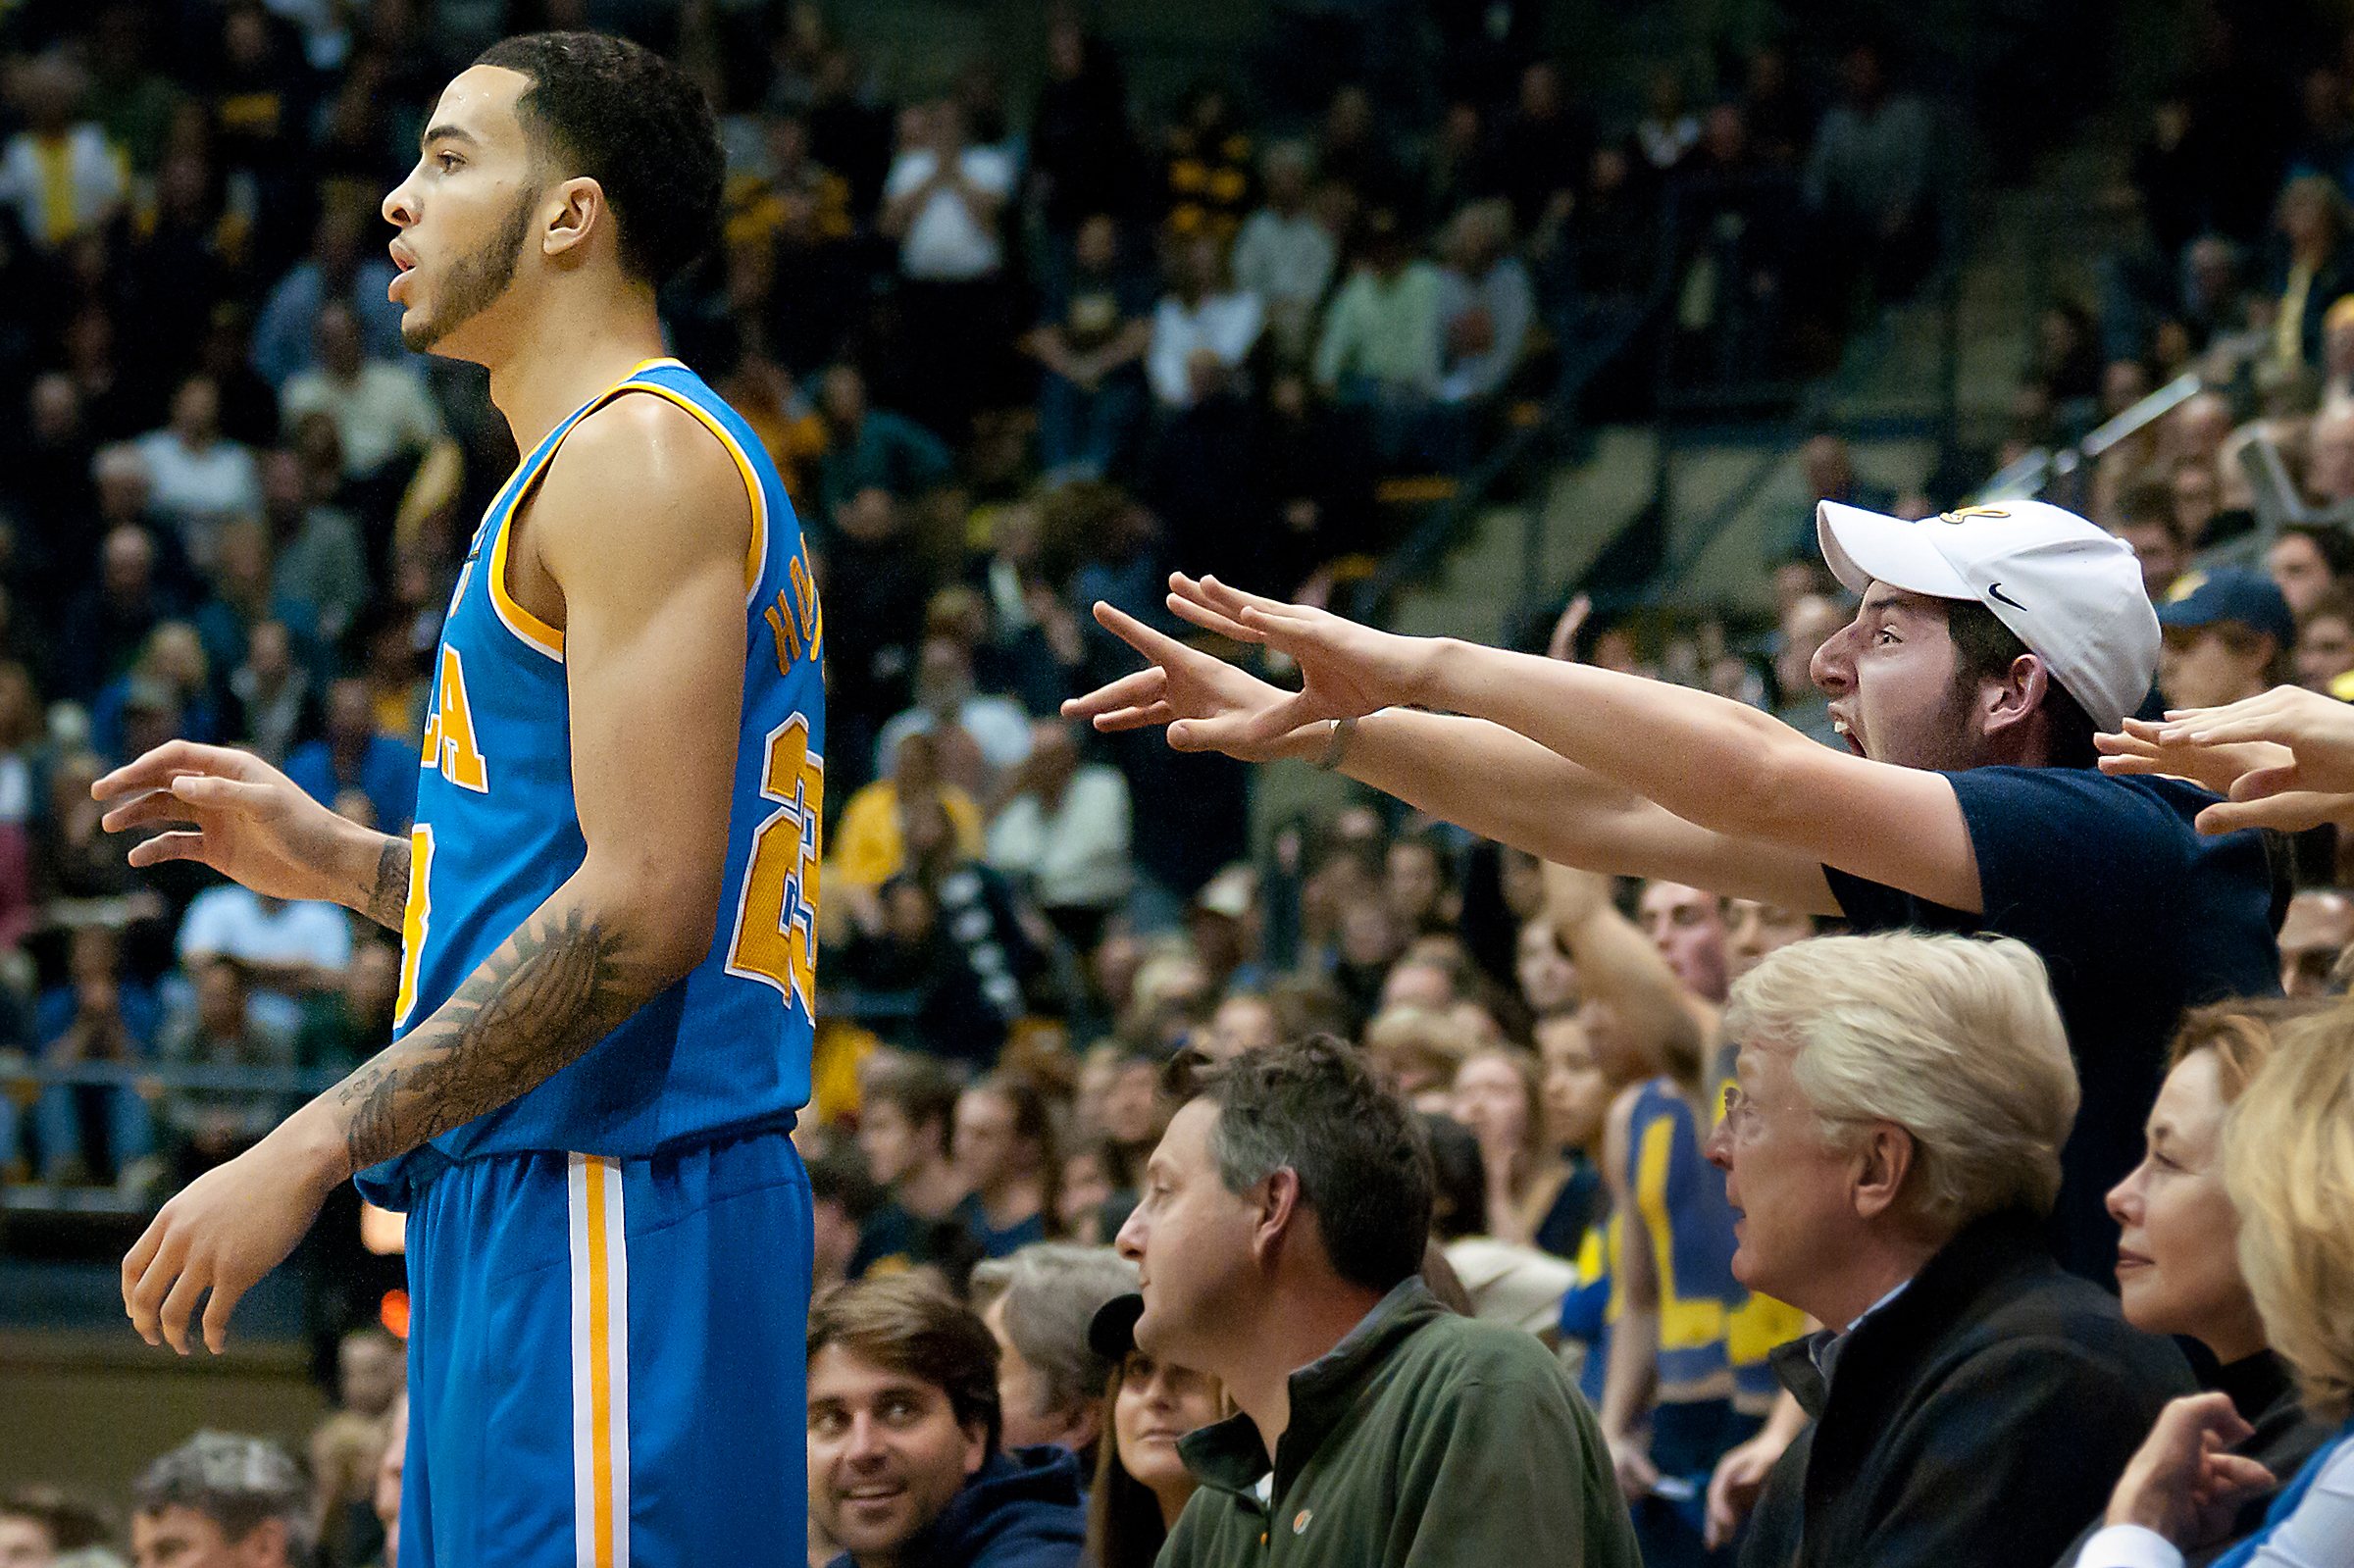 SEATTLE, WA – A fan attempts to distract Sophomore forward Tyler Honeycutt during an inbound play at Bank of America Arena on Thursday, March 3, 2011.